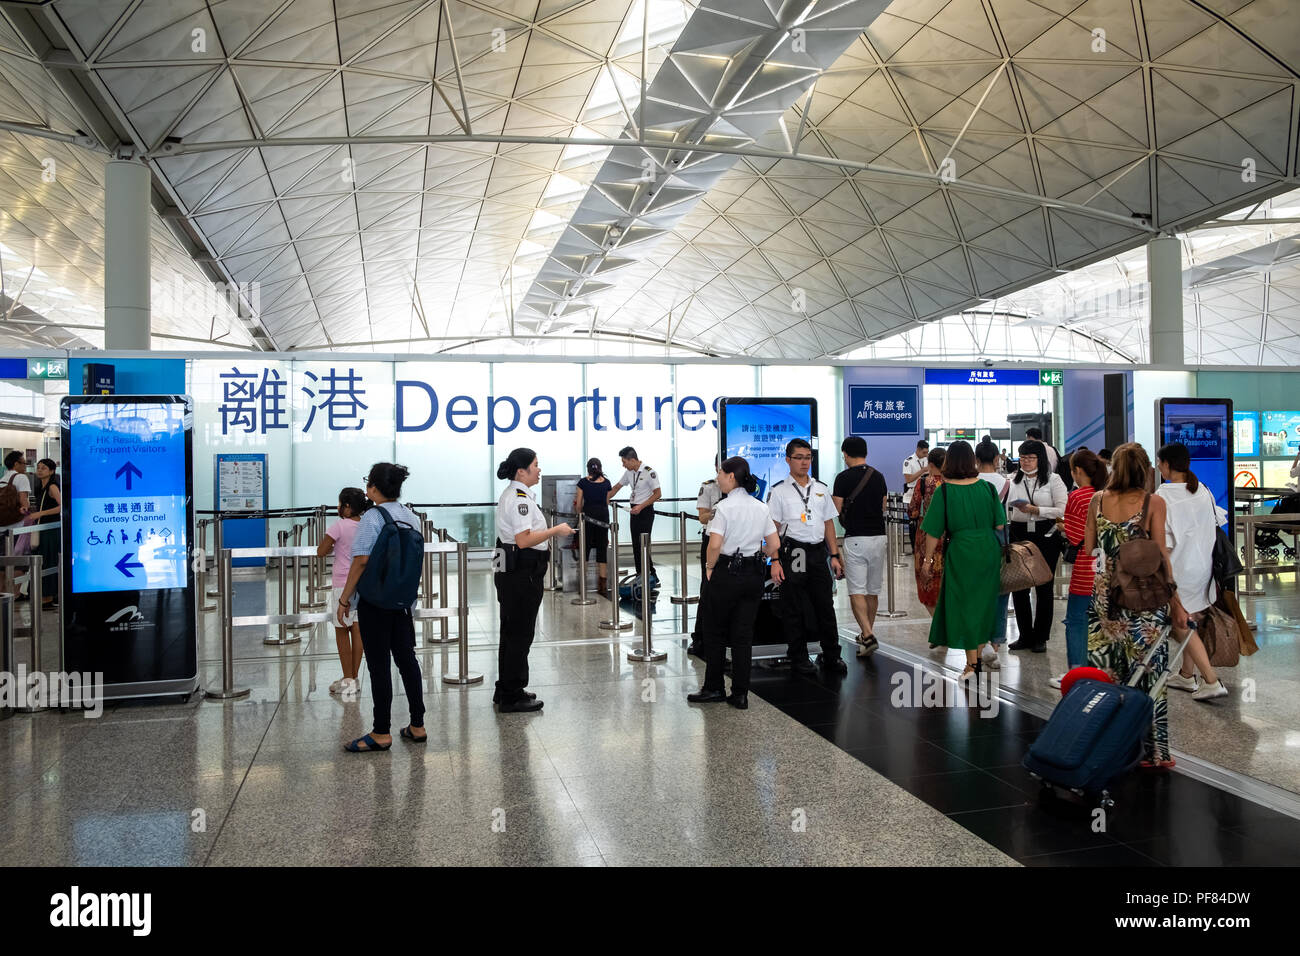 Lantau, Hong Kong - Août 05, 2018 : Les passagers porte bagages à l'Aéroport International de Hong Kong Banque D'Images